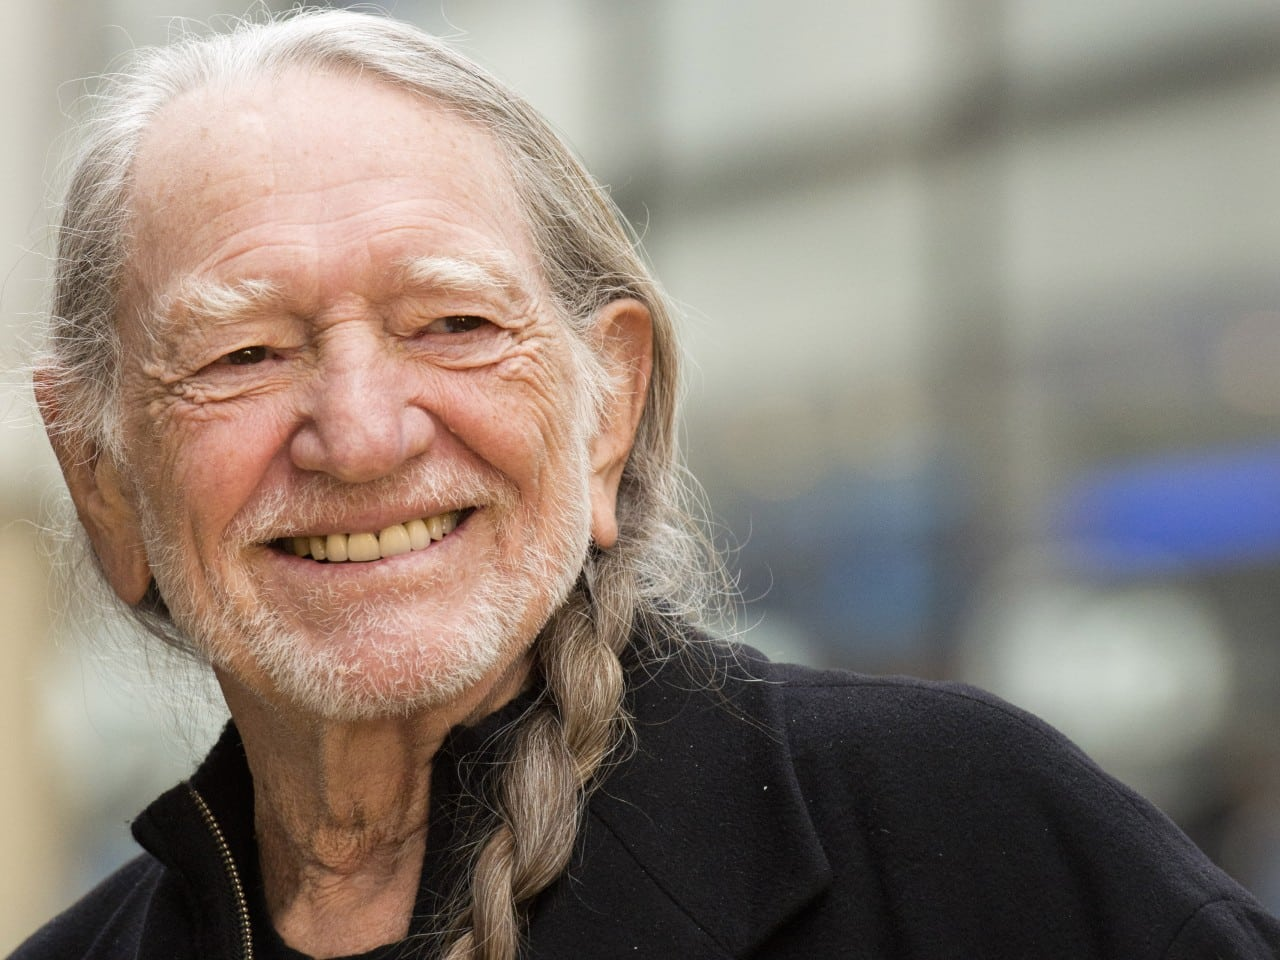 Featured image for Hoaxception: Willie Nelson Death Hoax is a Hoax Within a Hoax